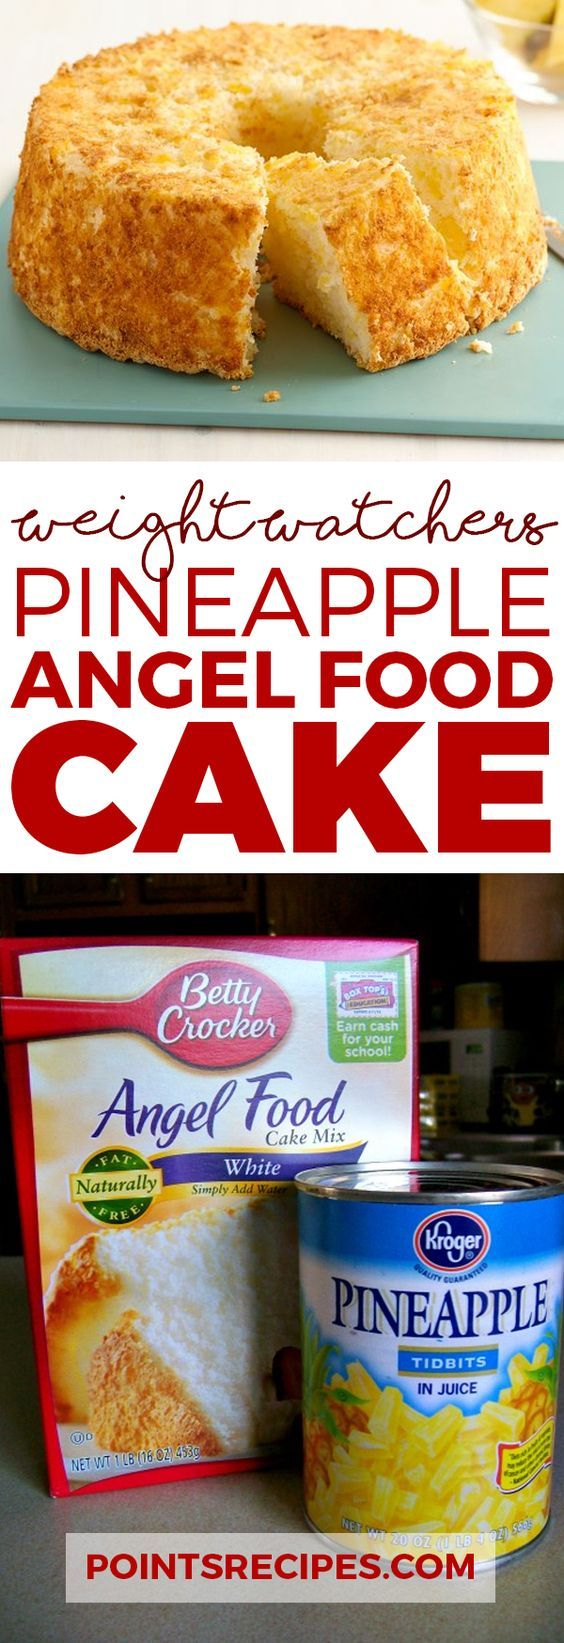 Pineapple Angel Food Cake (Weight Watchers SmartPoints)